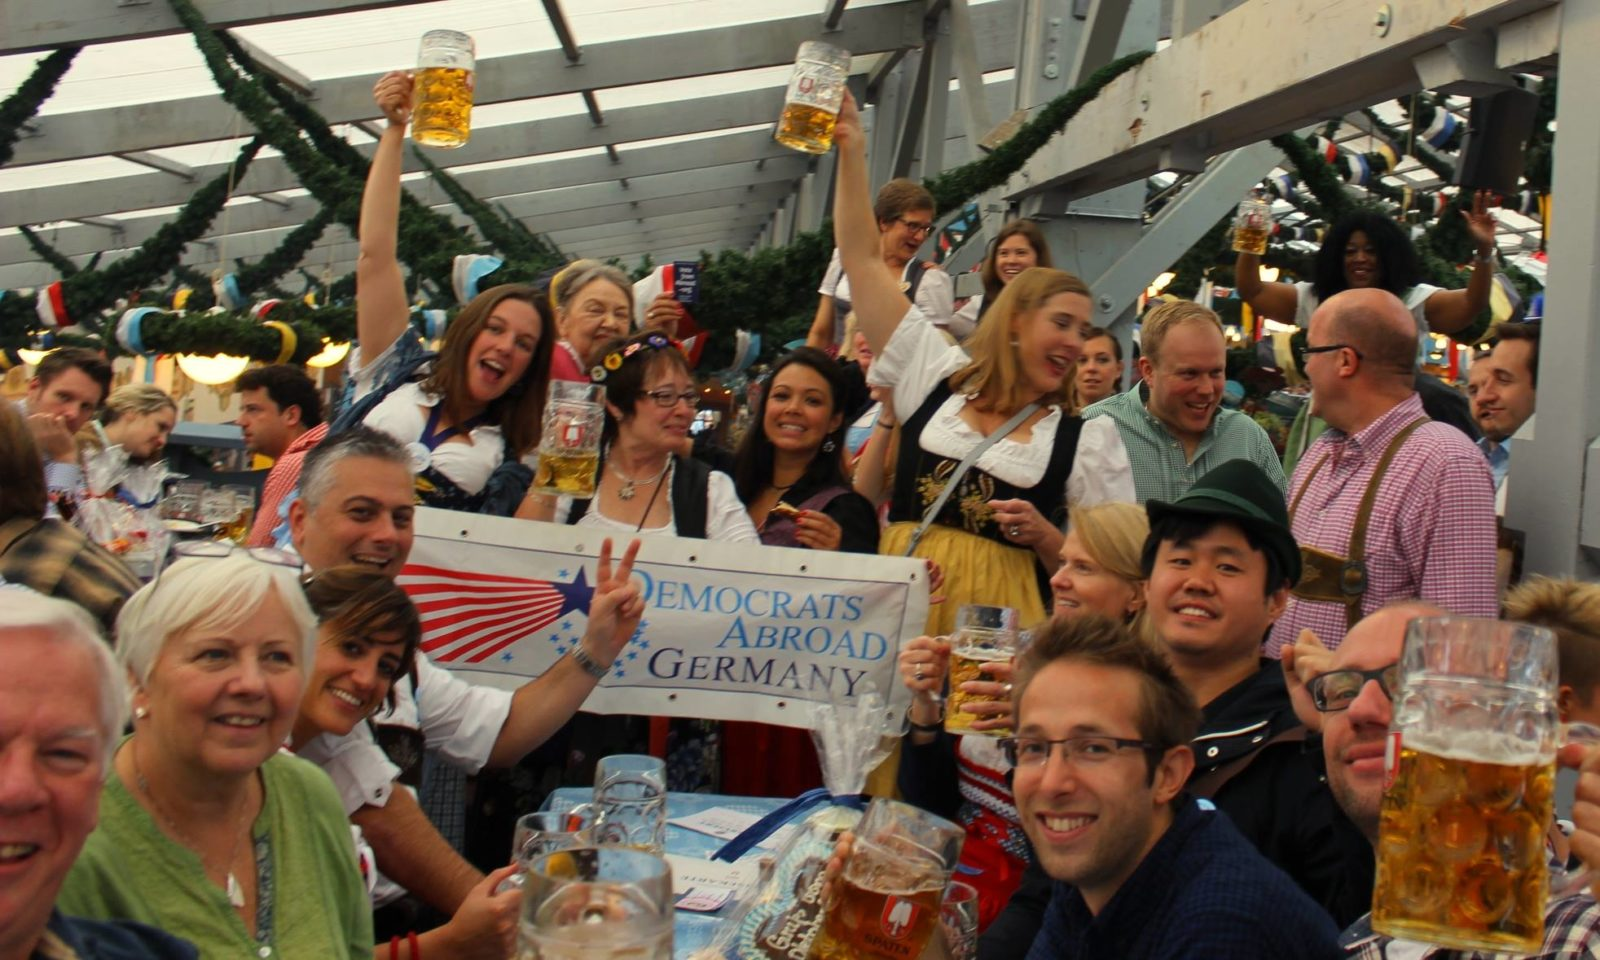 DA Germany at the Oktoberfest